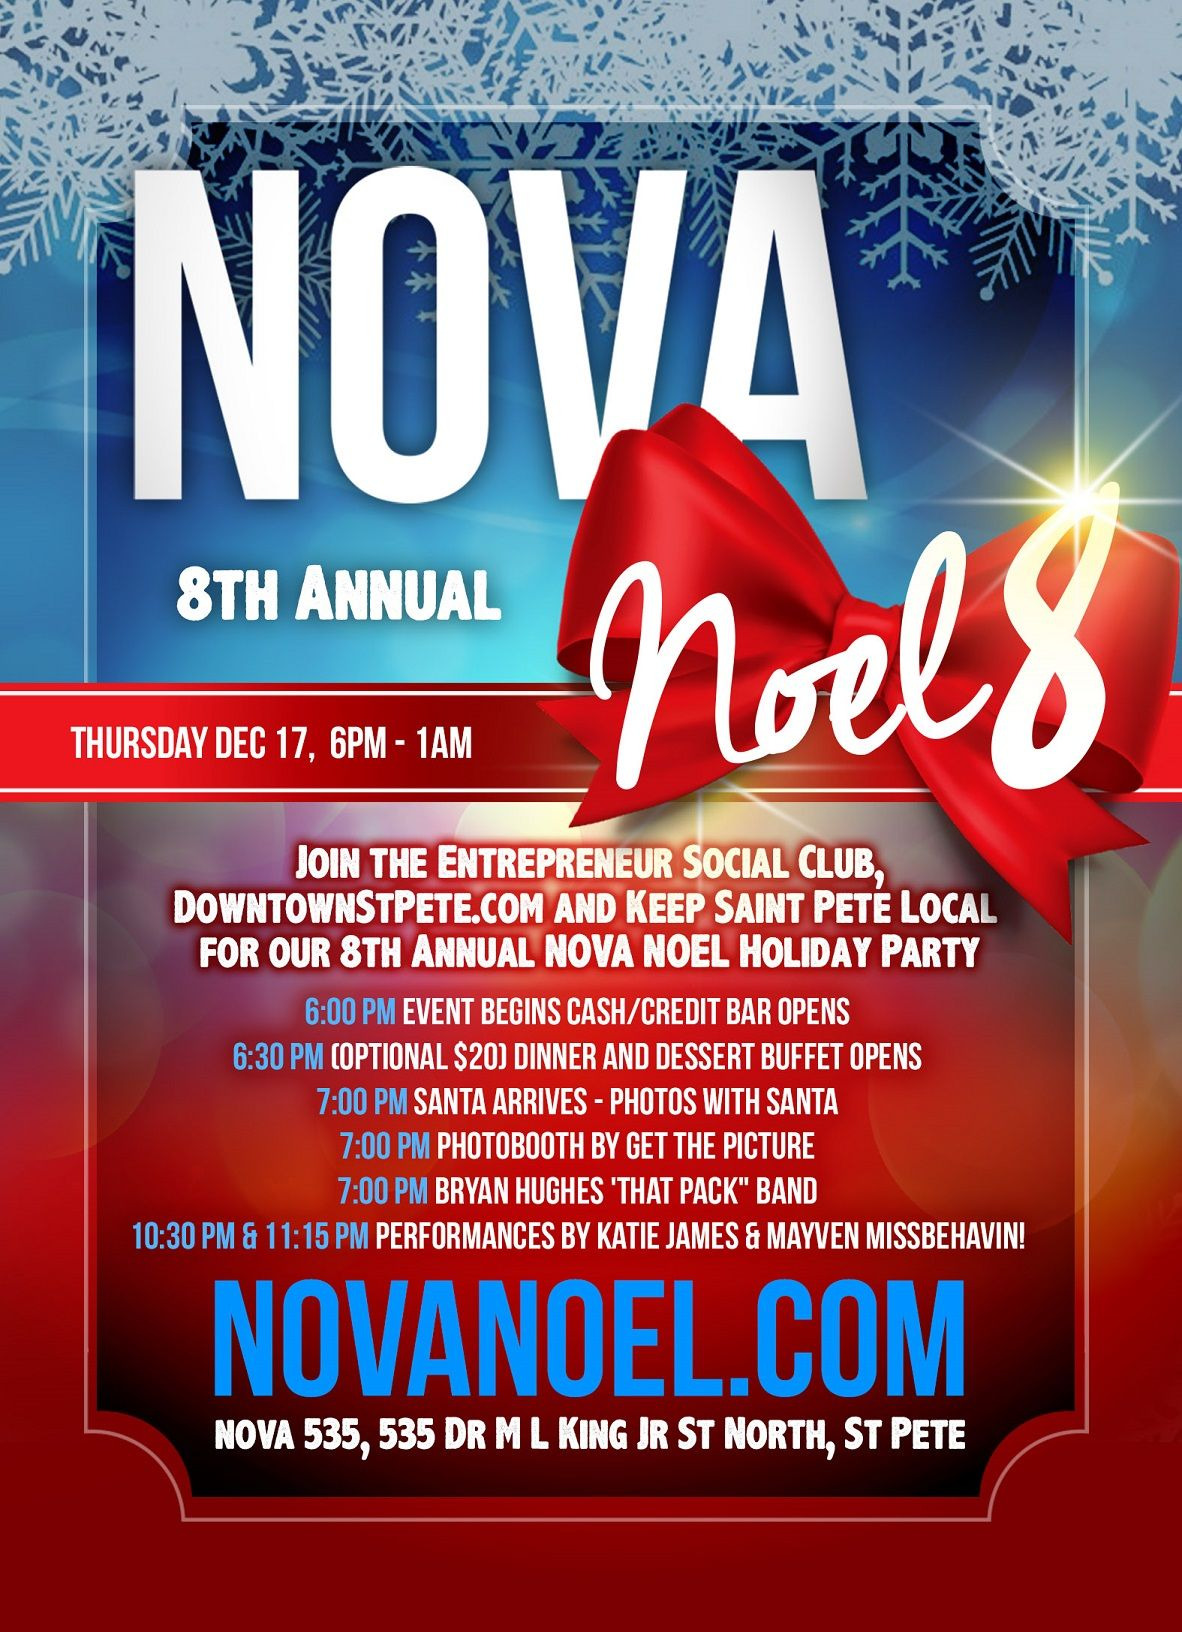 NOVA Noel 8 Thursday Dec 17 2015